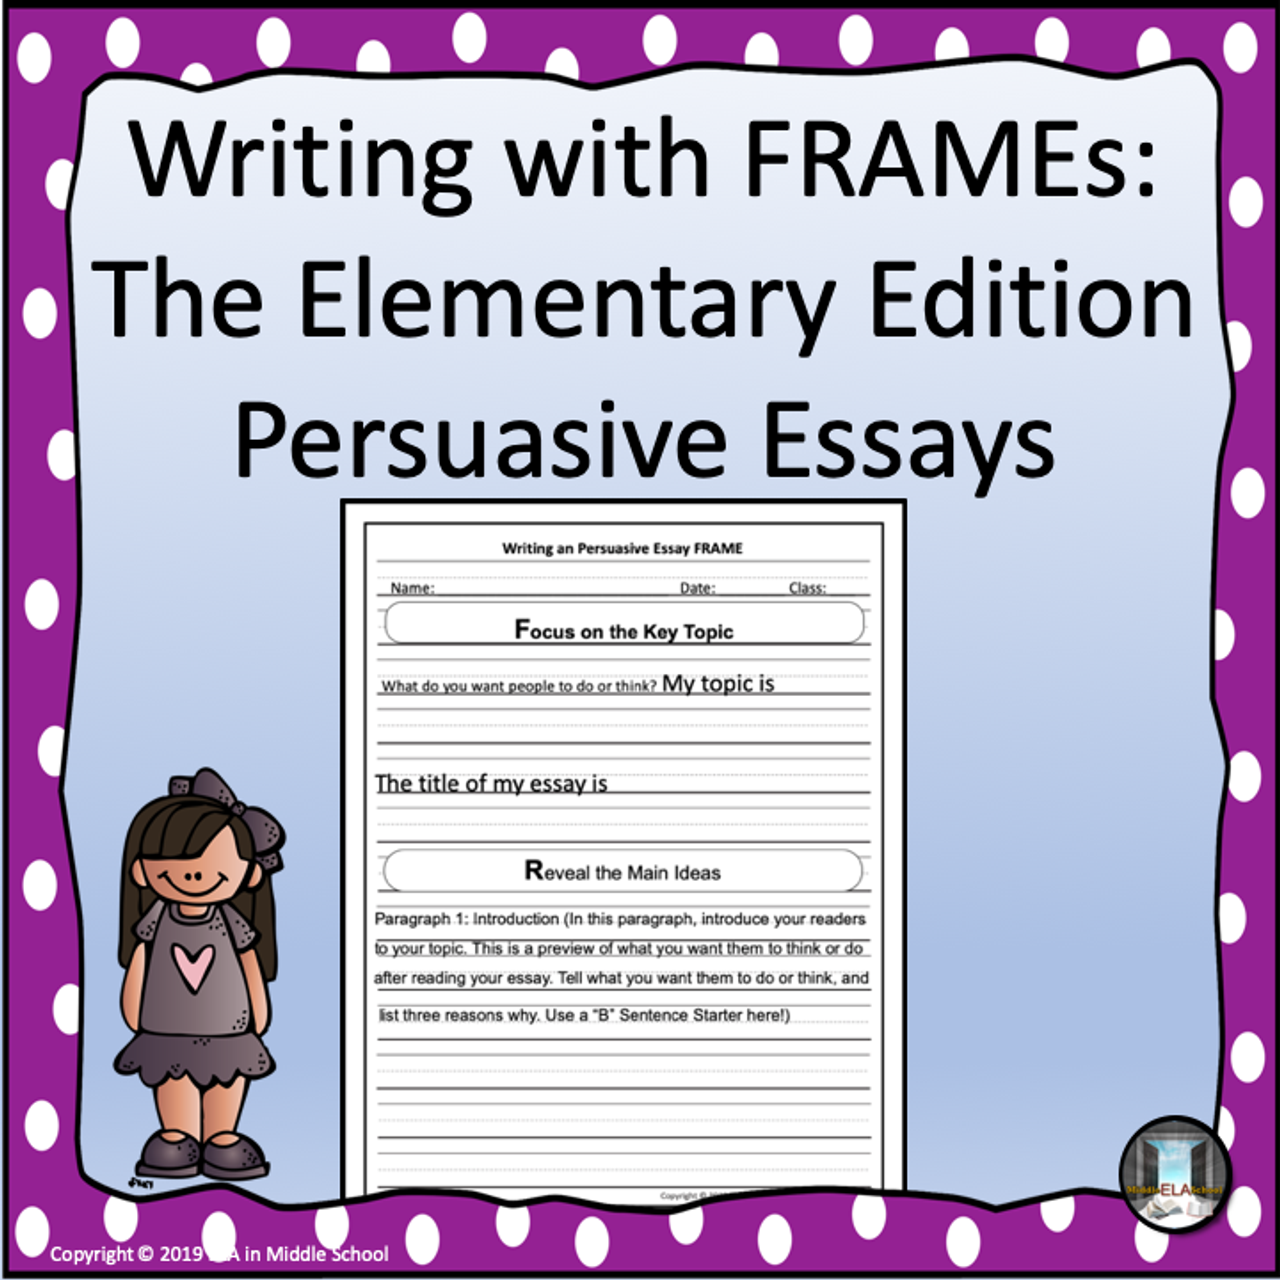 Writing with FRAMEs The Elementary Edition: The Persuasive Essay